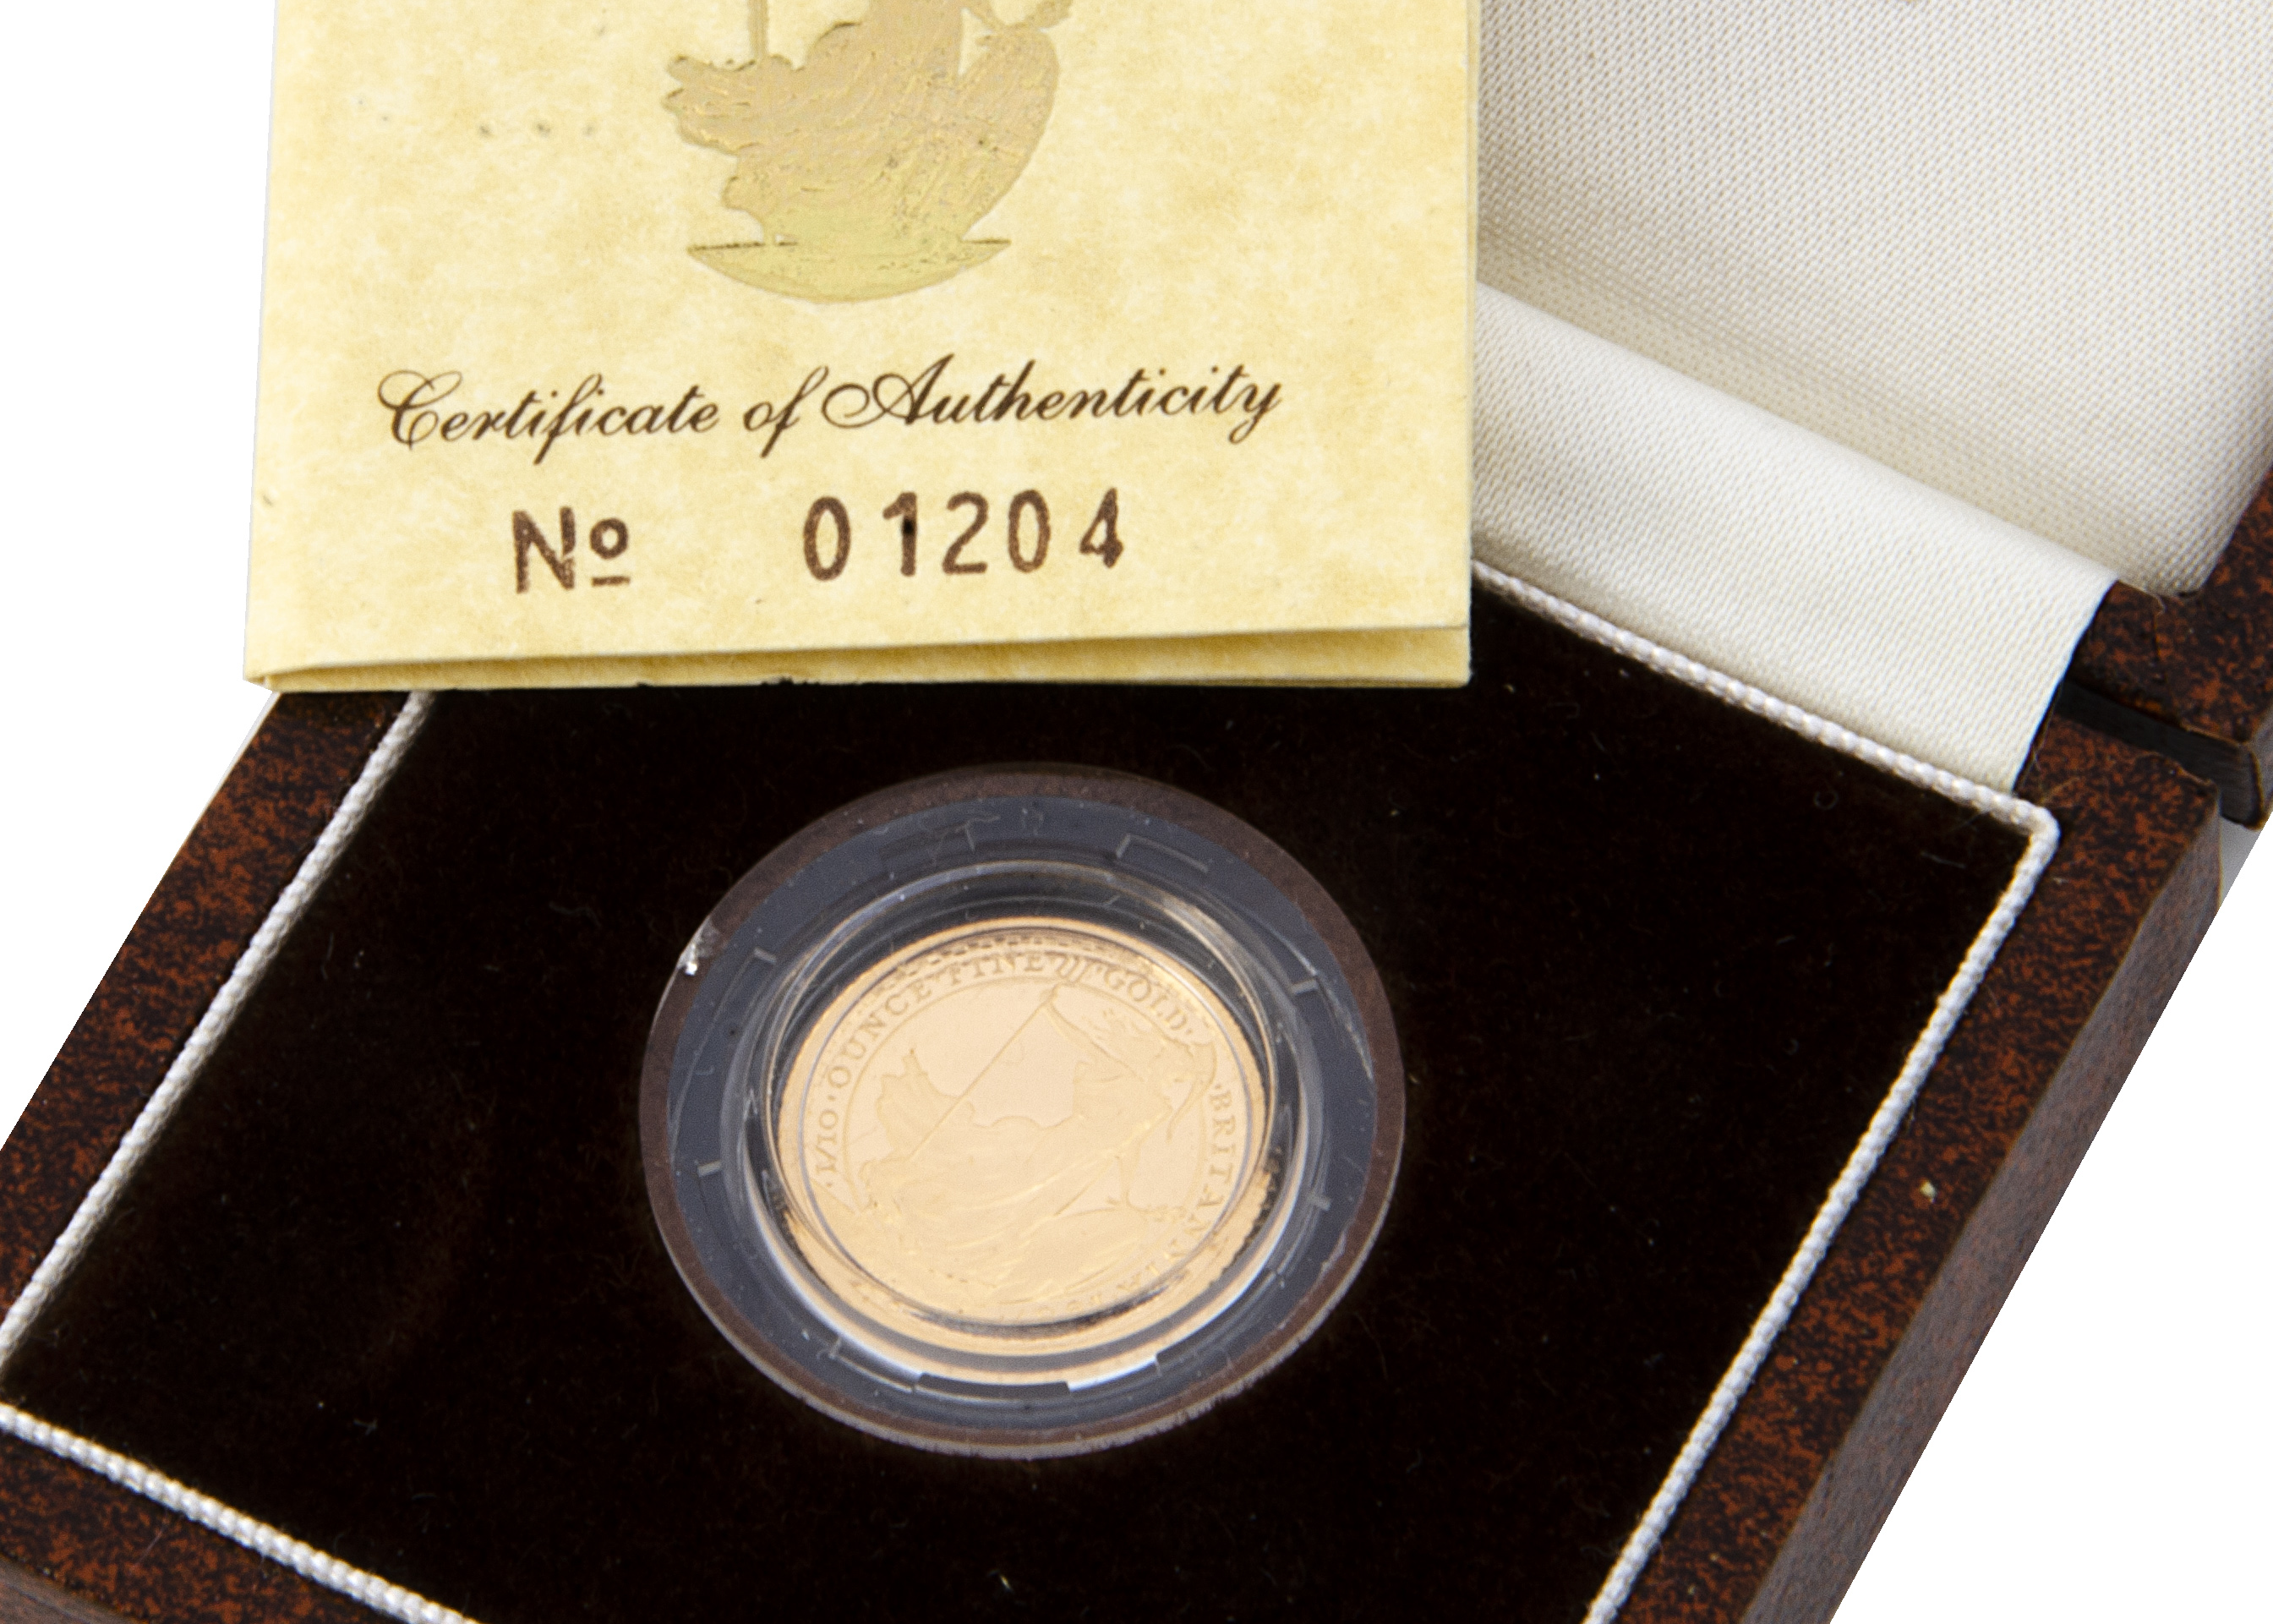 A modern Royal Mint Britannia 1/10 oz Gold Proof £10 coin, dated 1987, in box with certificate, 3.4g